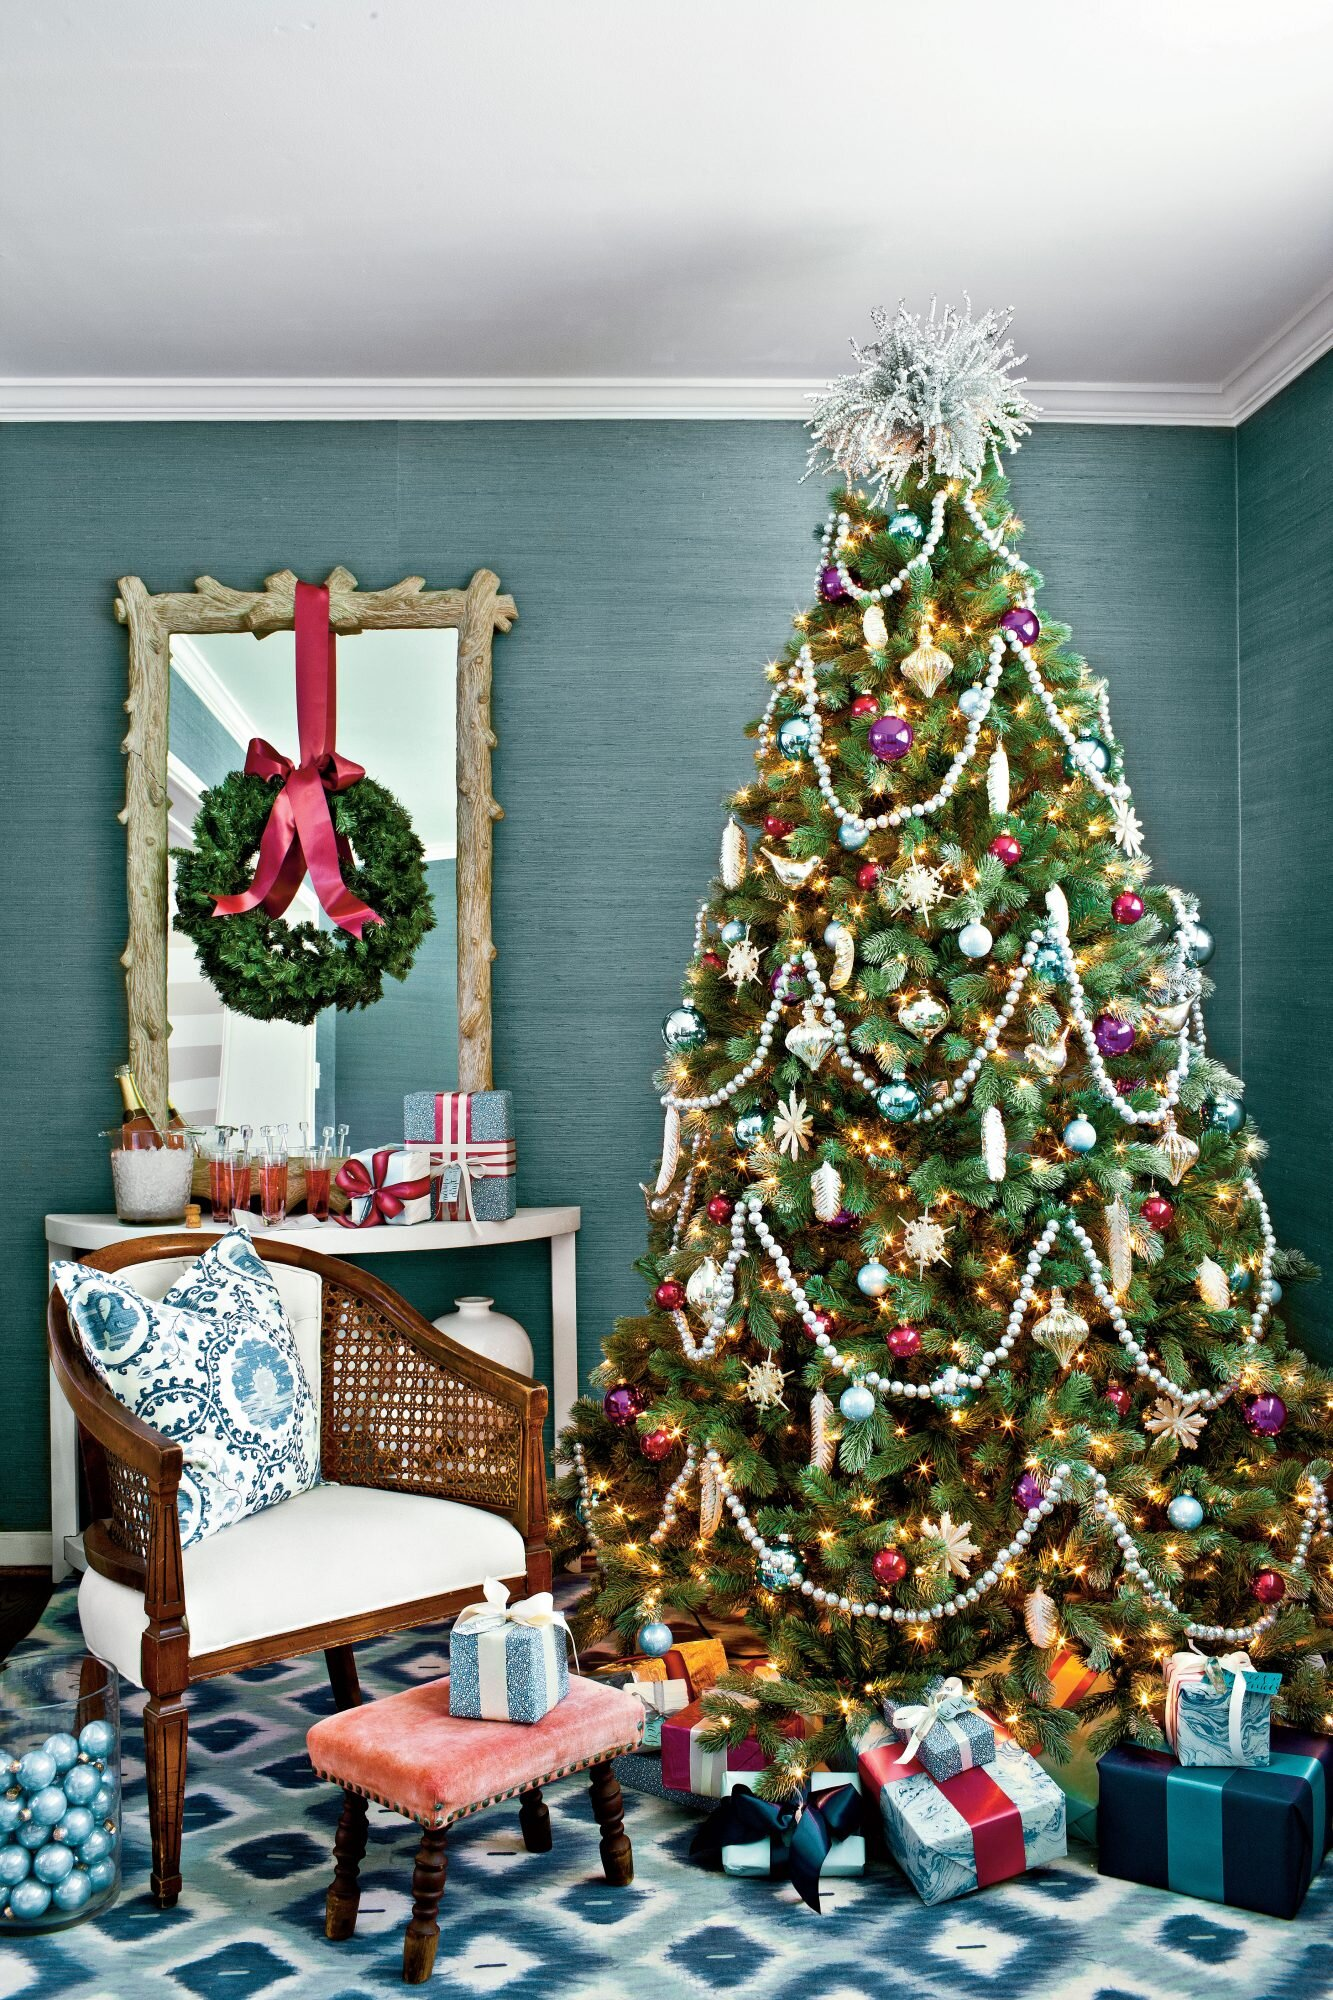 Decorating with Vintage Christmas Ornaments | Southern Living